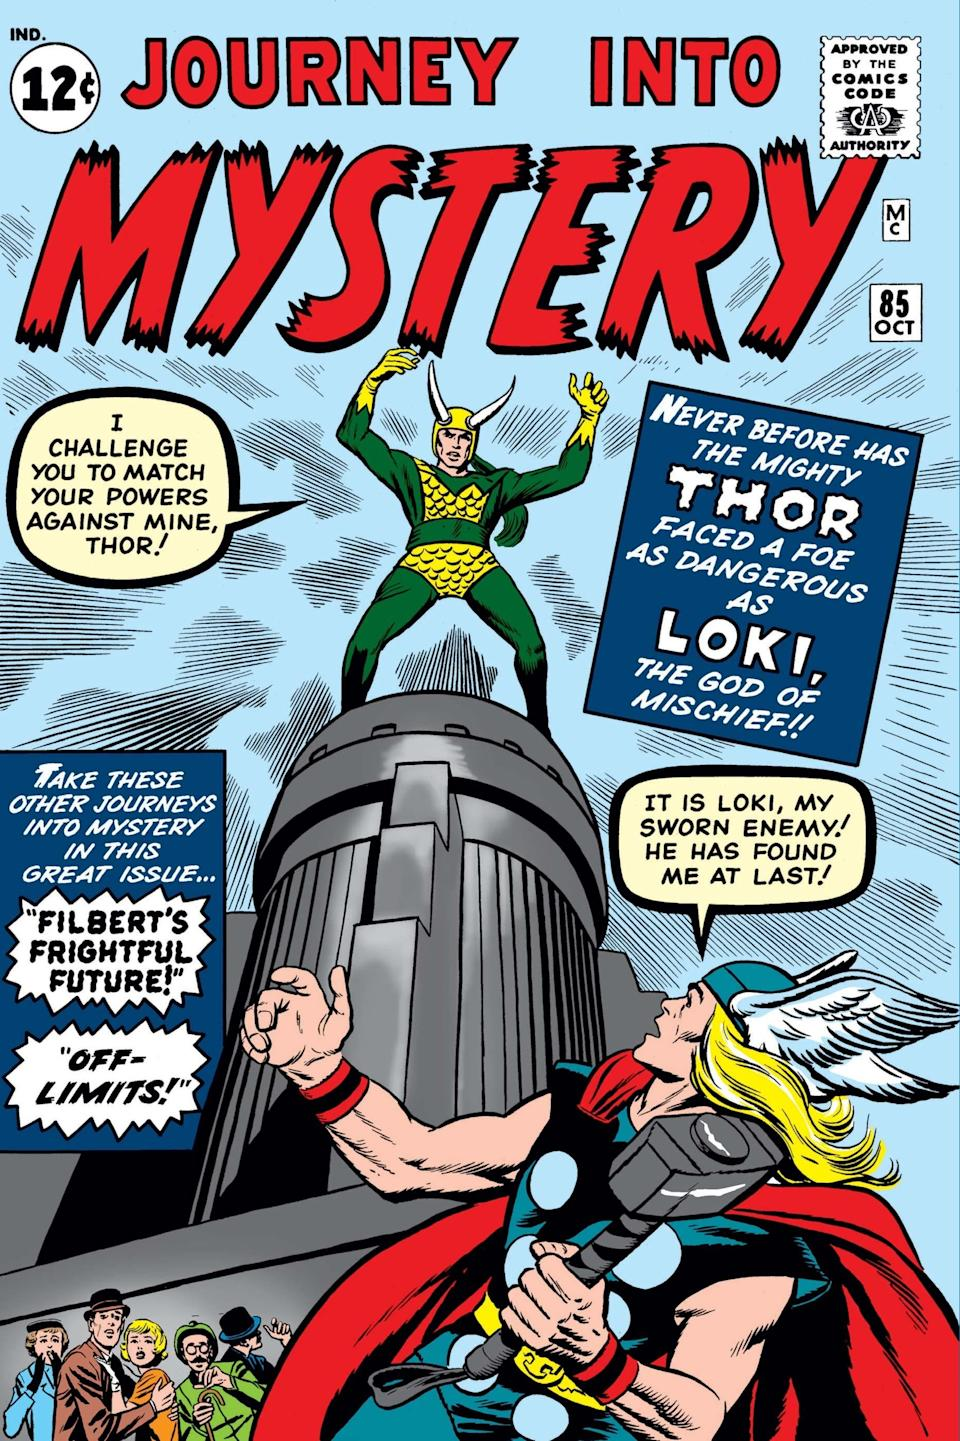 Cover of the Marvel comic Journey into Mystery, where Loki stands on a building with a horned helmet and a suit with scales on it